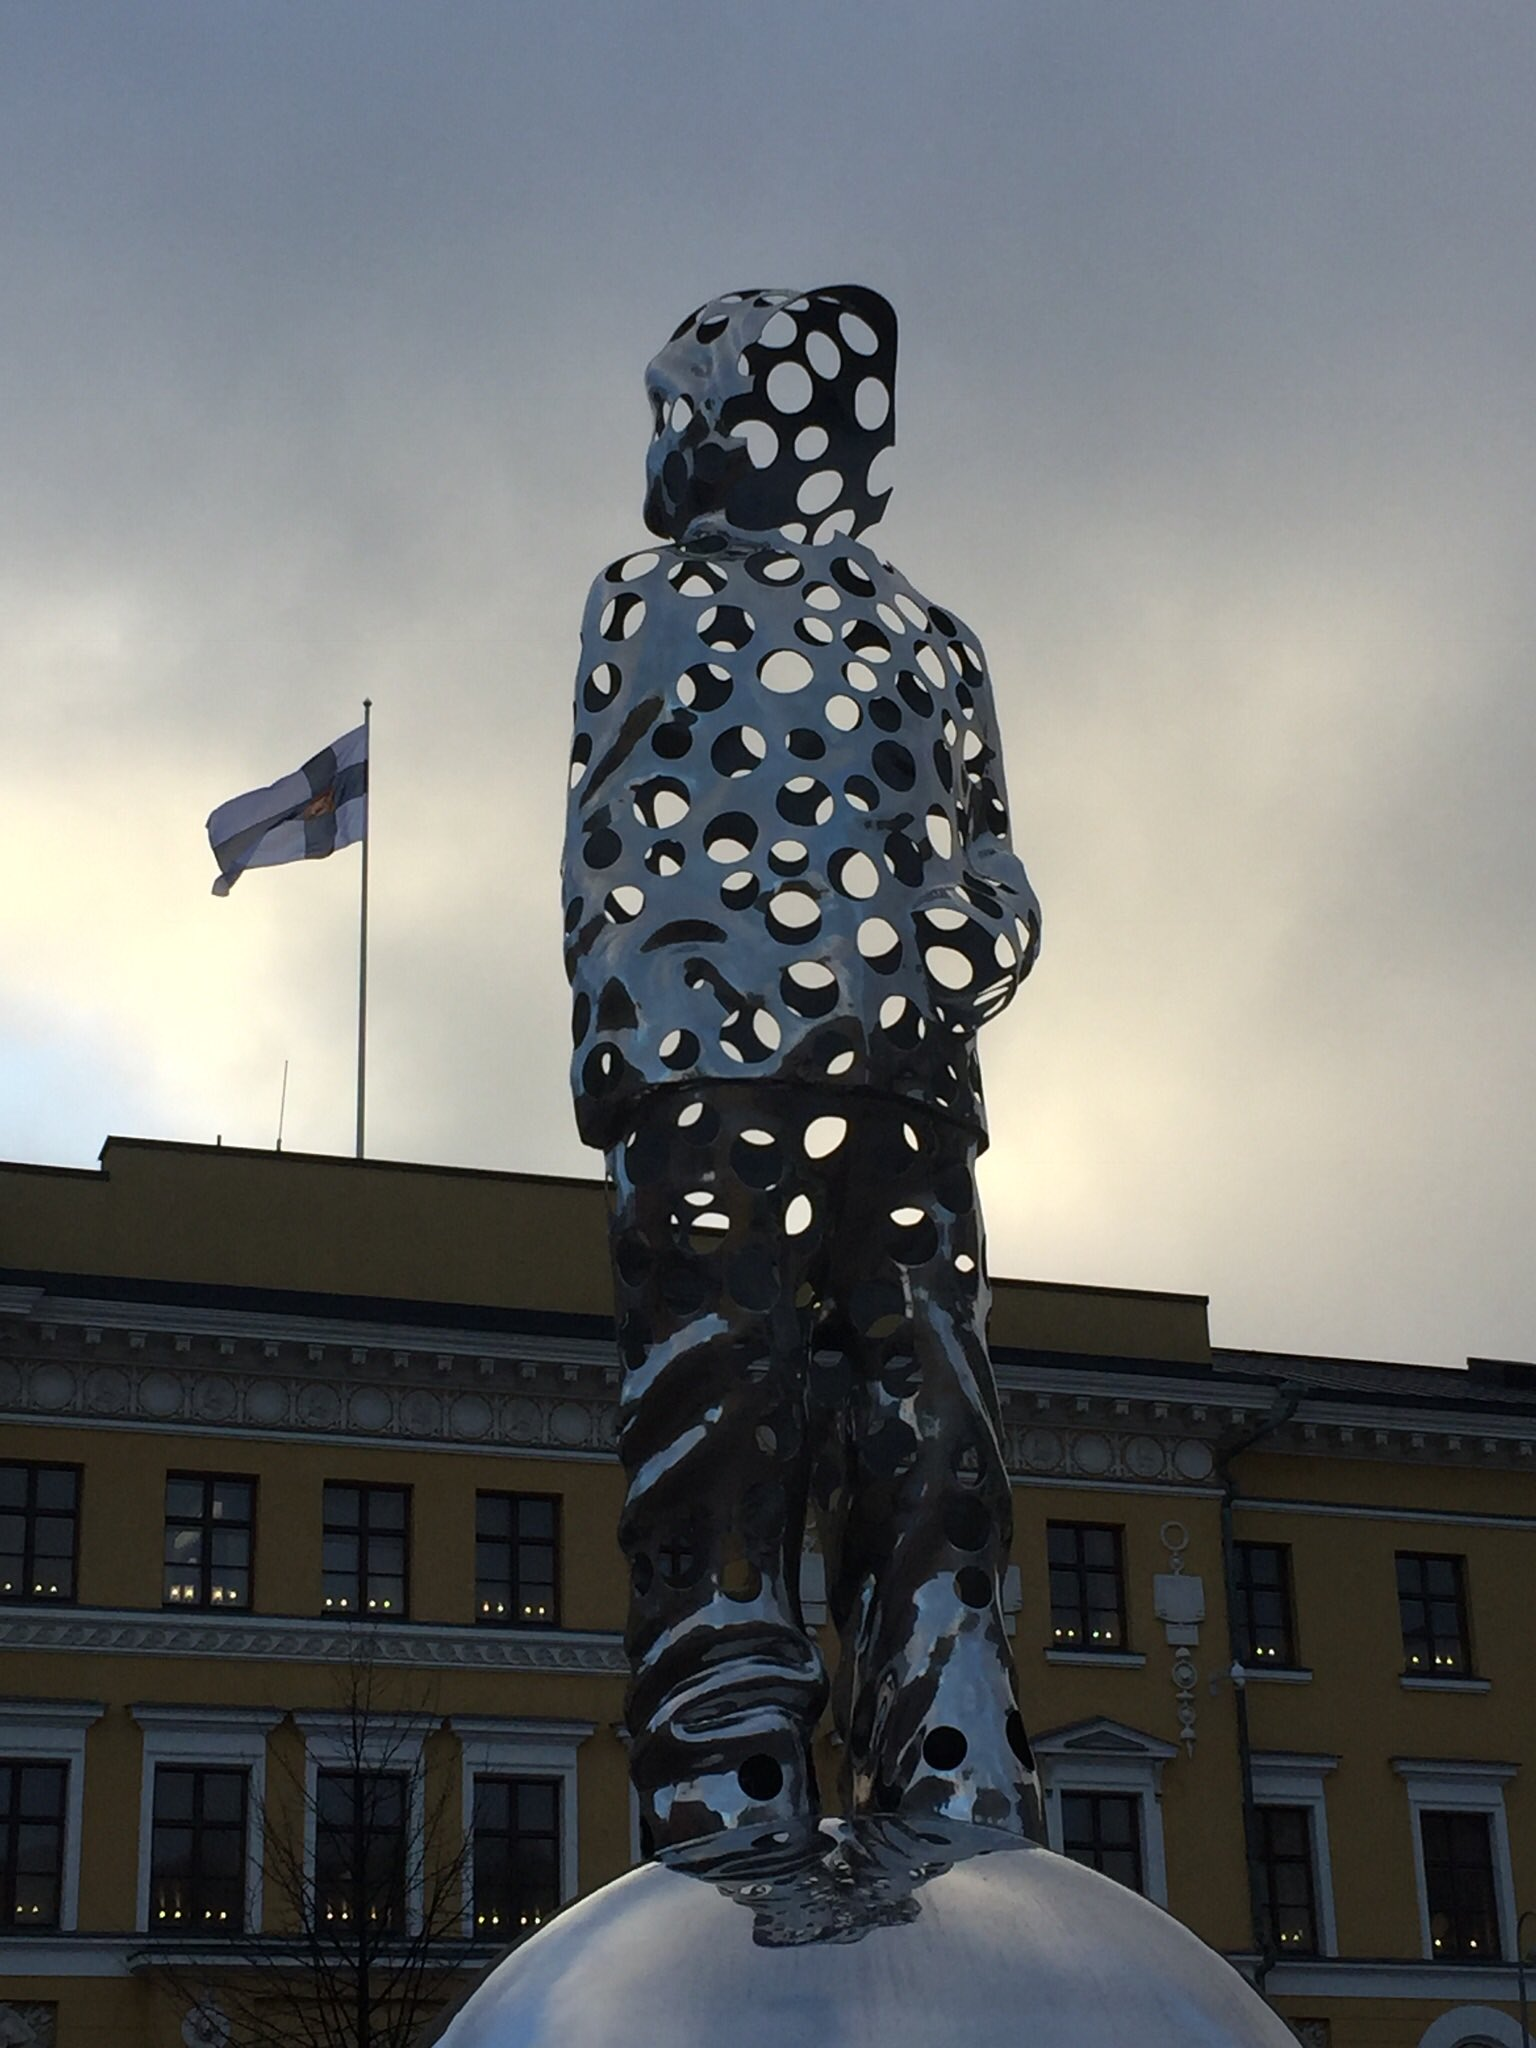 There is 5 hr 49 min daylight in #Helsinki on the shortest day of the year. #wintersolstice2017 https://t.co/Qtuwws1LXj